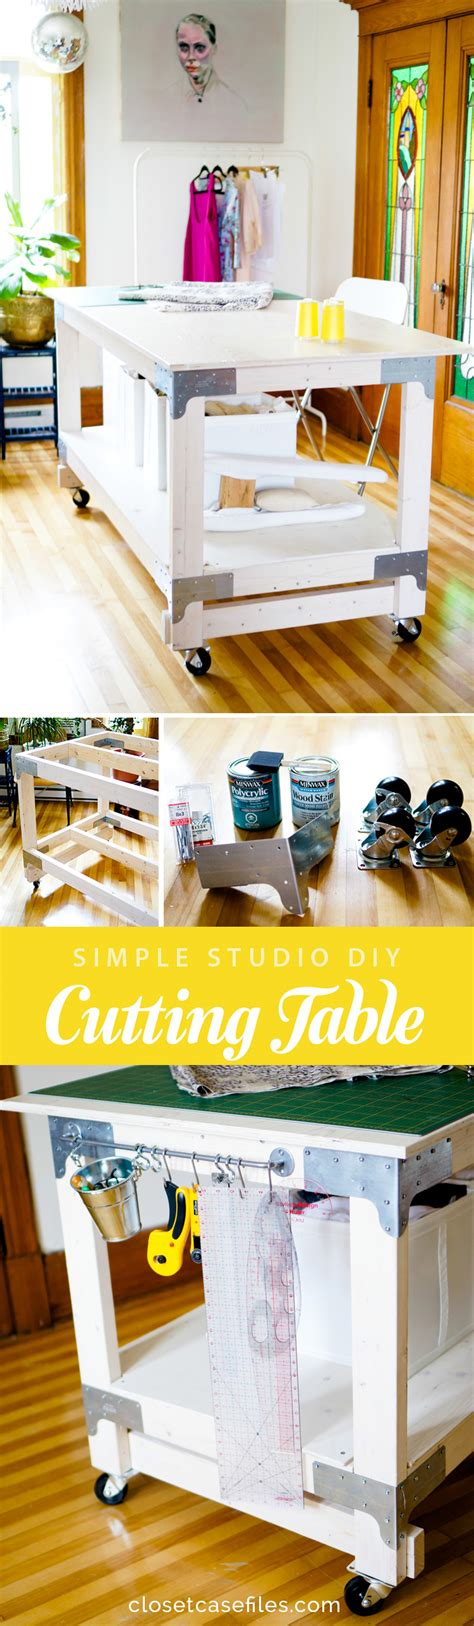 sewing and cutting sewing cutting diy for your craft or sewing studio